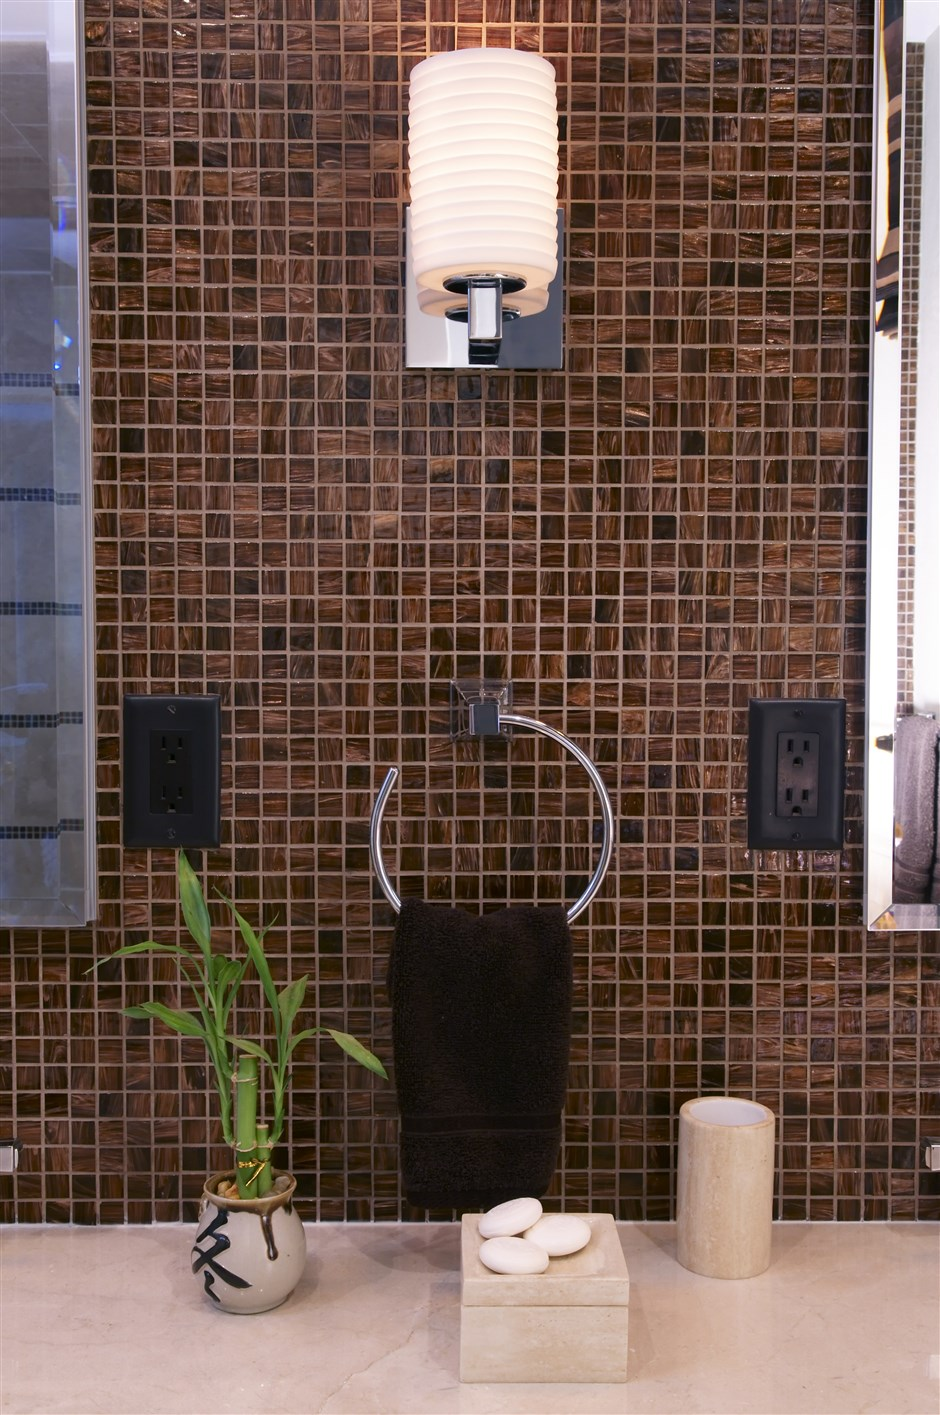 Sink portion of bathroom with indoor plant and stylish lamp on the wall